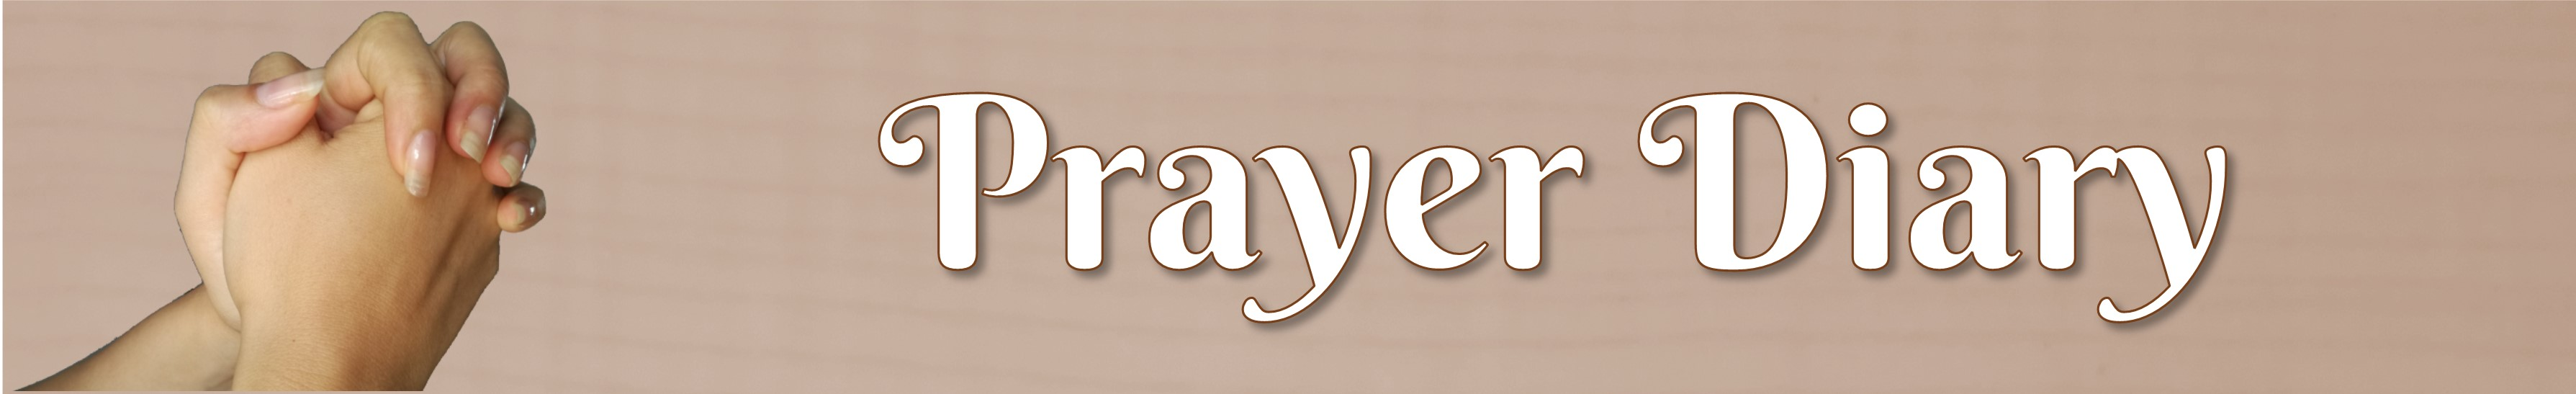 Prayer Request | Jesus to my Rescue